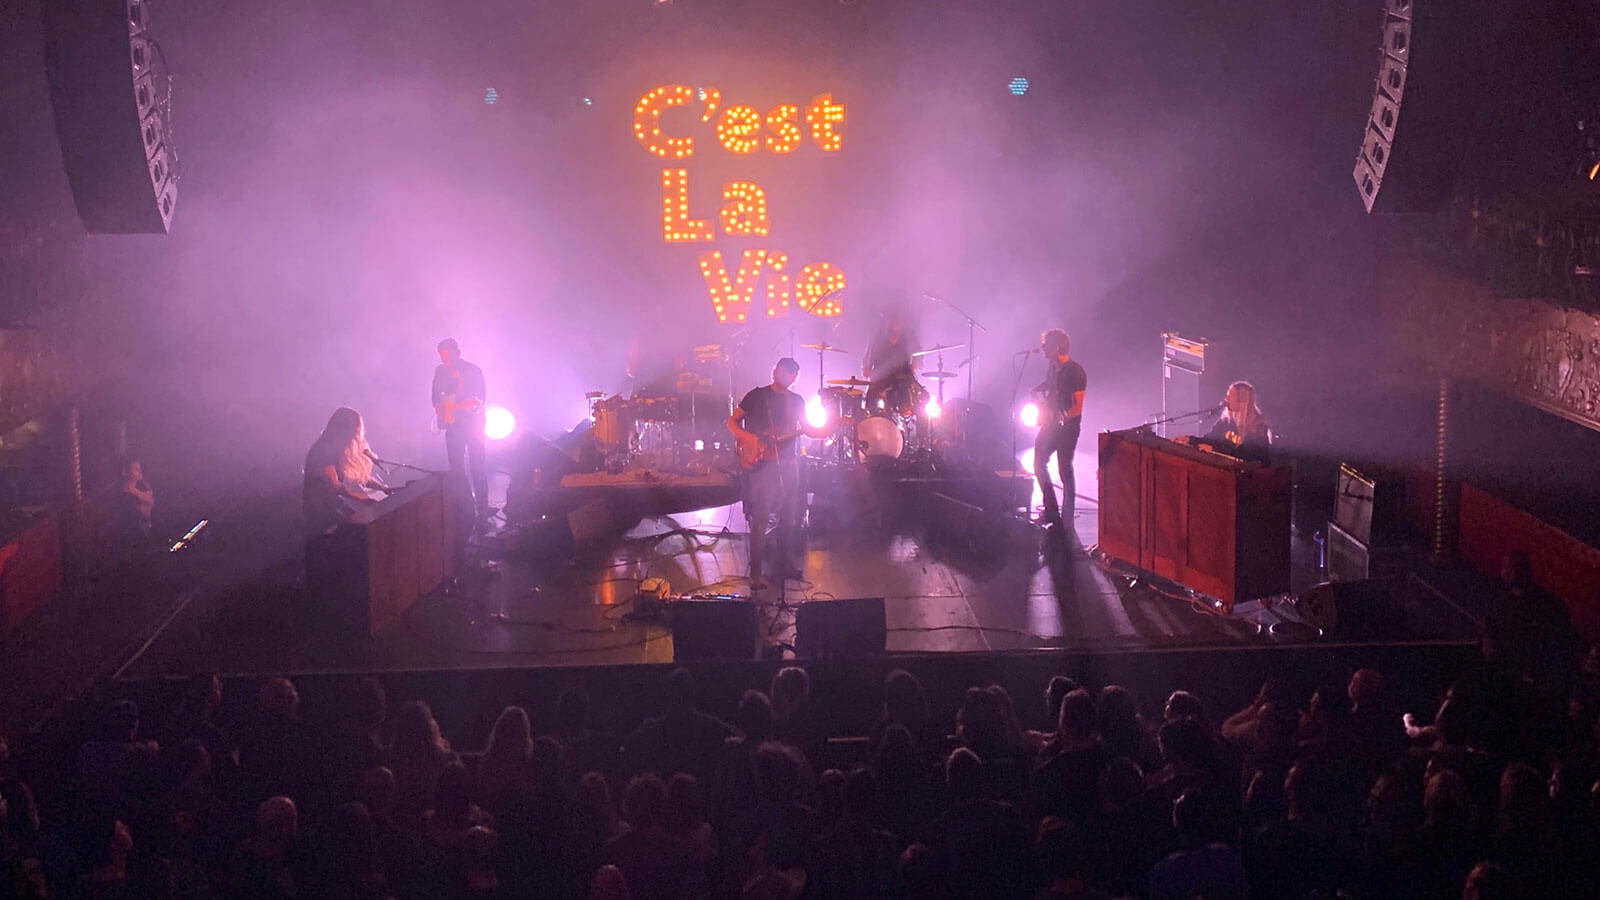 Phosphorescent (Matthew Houck) and his six-piece band perform on stage before a crowd. The lighting is tinted purple and the band is backed by a large, illuminated sign reading 'C'est La Vie', the title of their recent album.